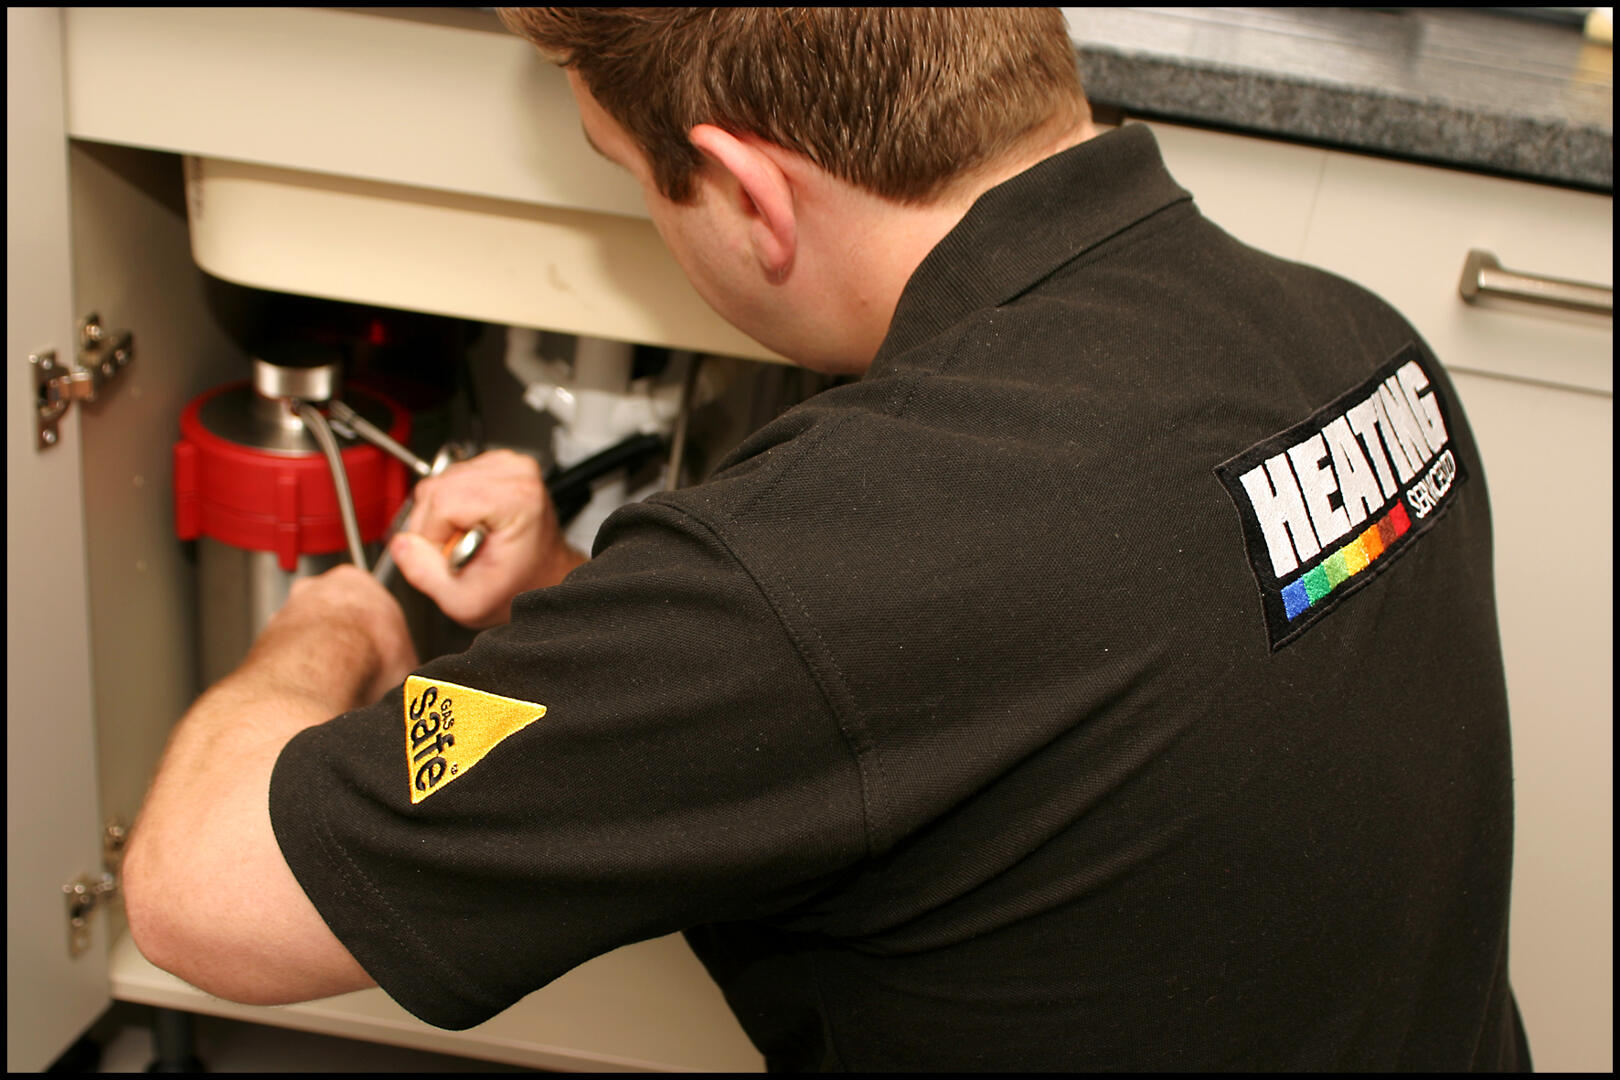 Plumbers Boiler Installation Service and Repairs and Bathroom Design and Installation by Heating Services Ltd in West Wickham (2)